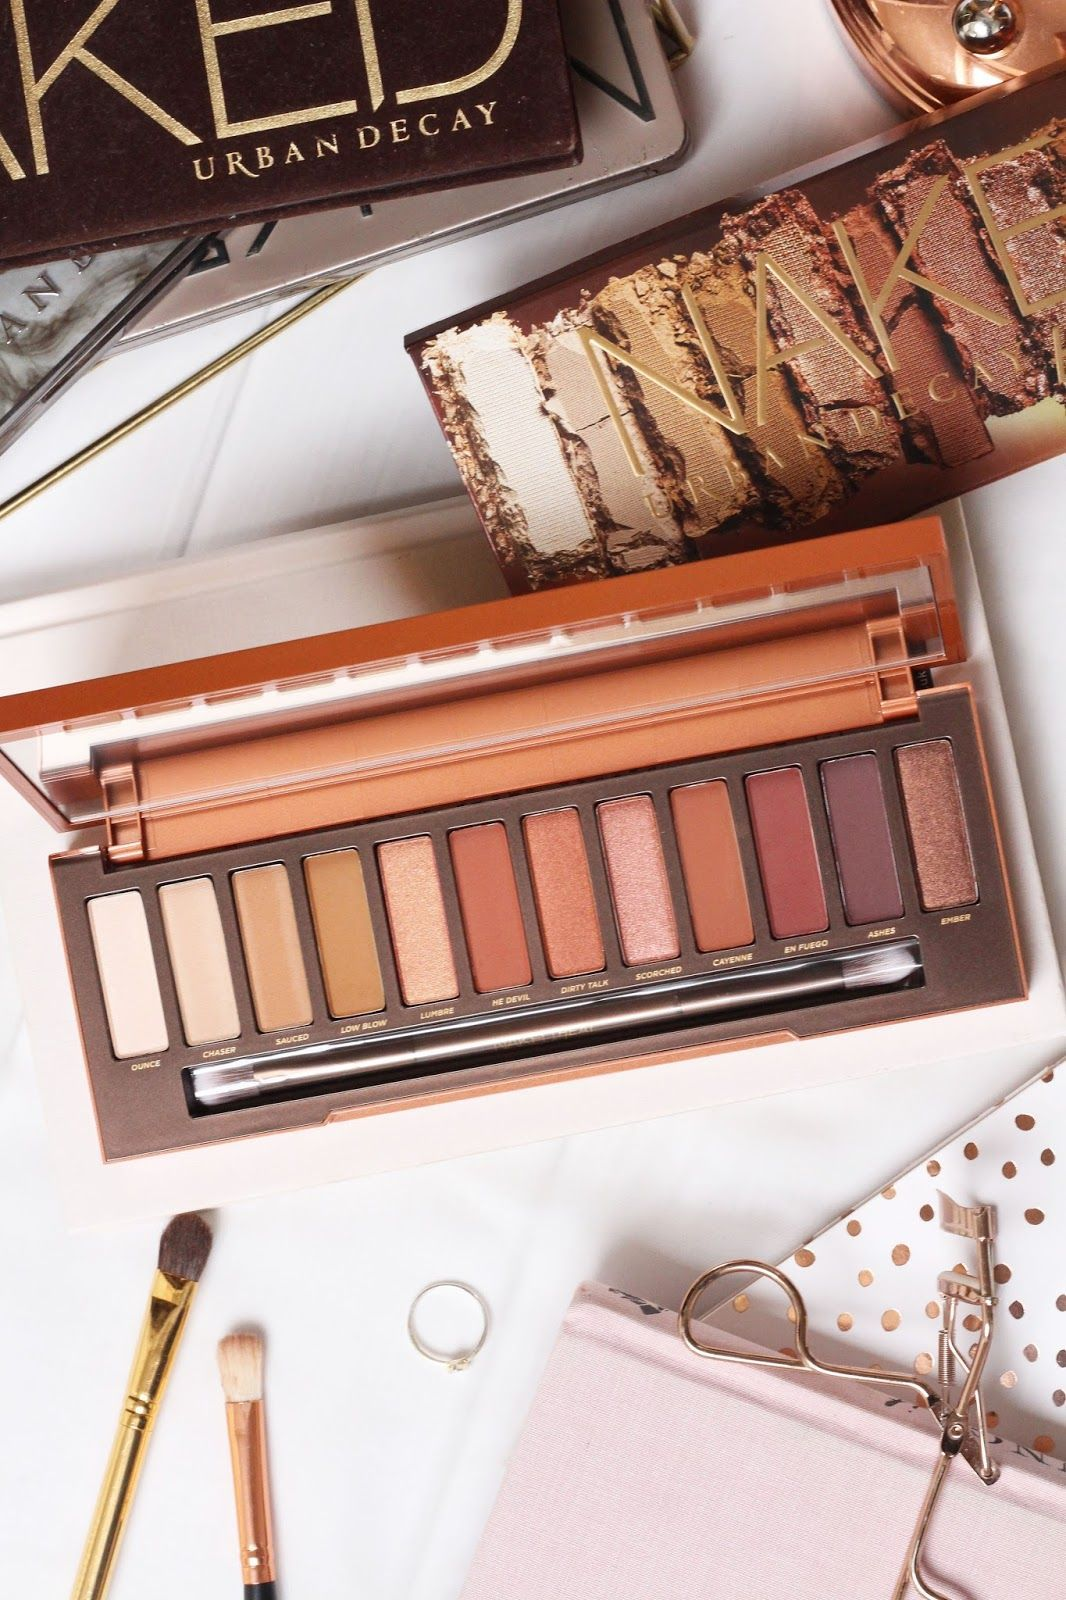 Urban Decay Naked Heat Review + Swatches - Hairspray and